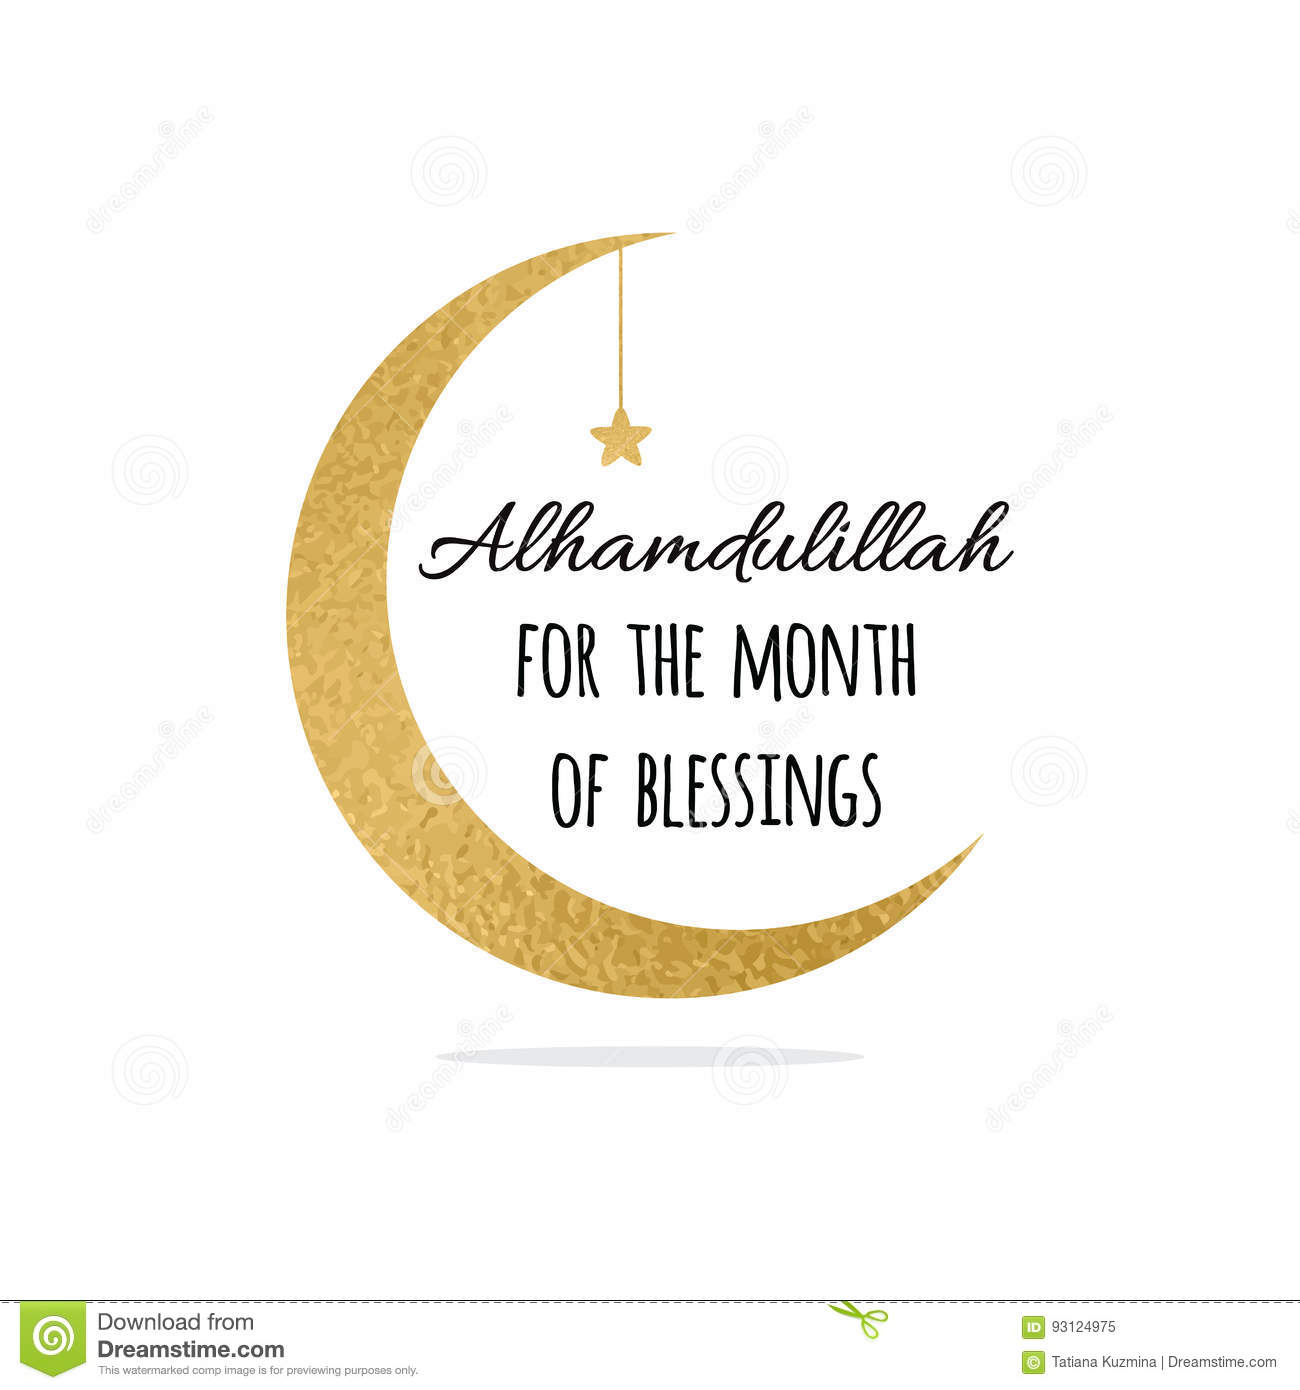 Alhamdulillah quote into golden crescent moon and star for holy download alhamdulillah quote into golden crescent moon and star for holy month of muslim community thecheapjerseys Images